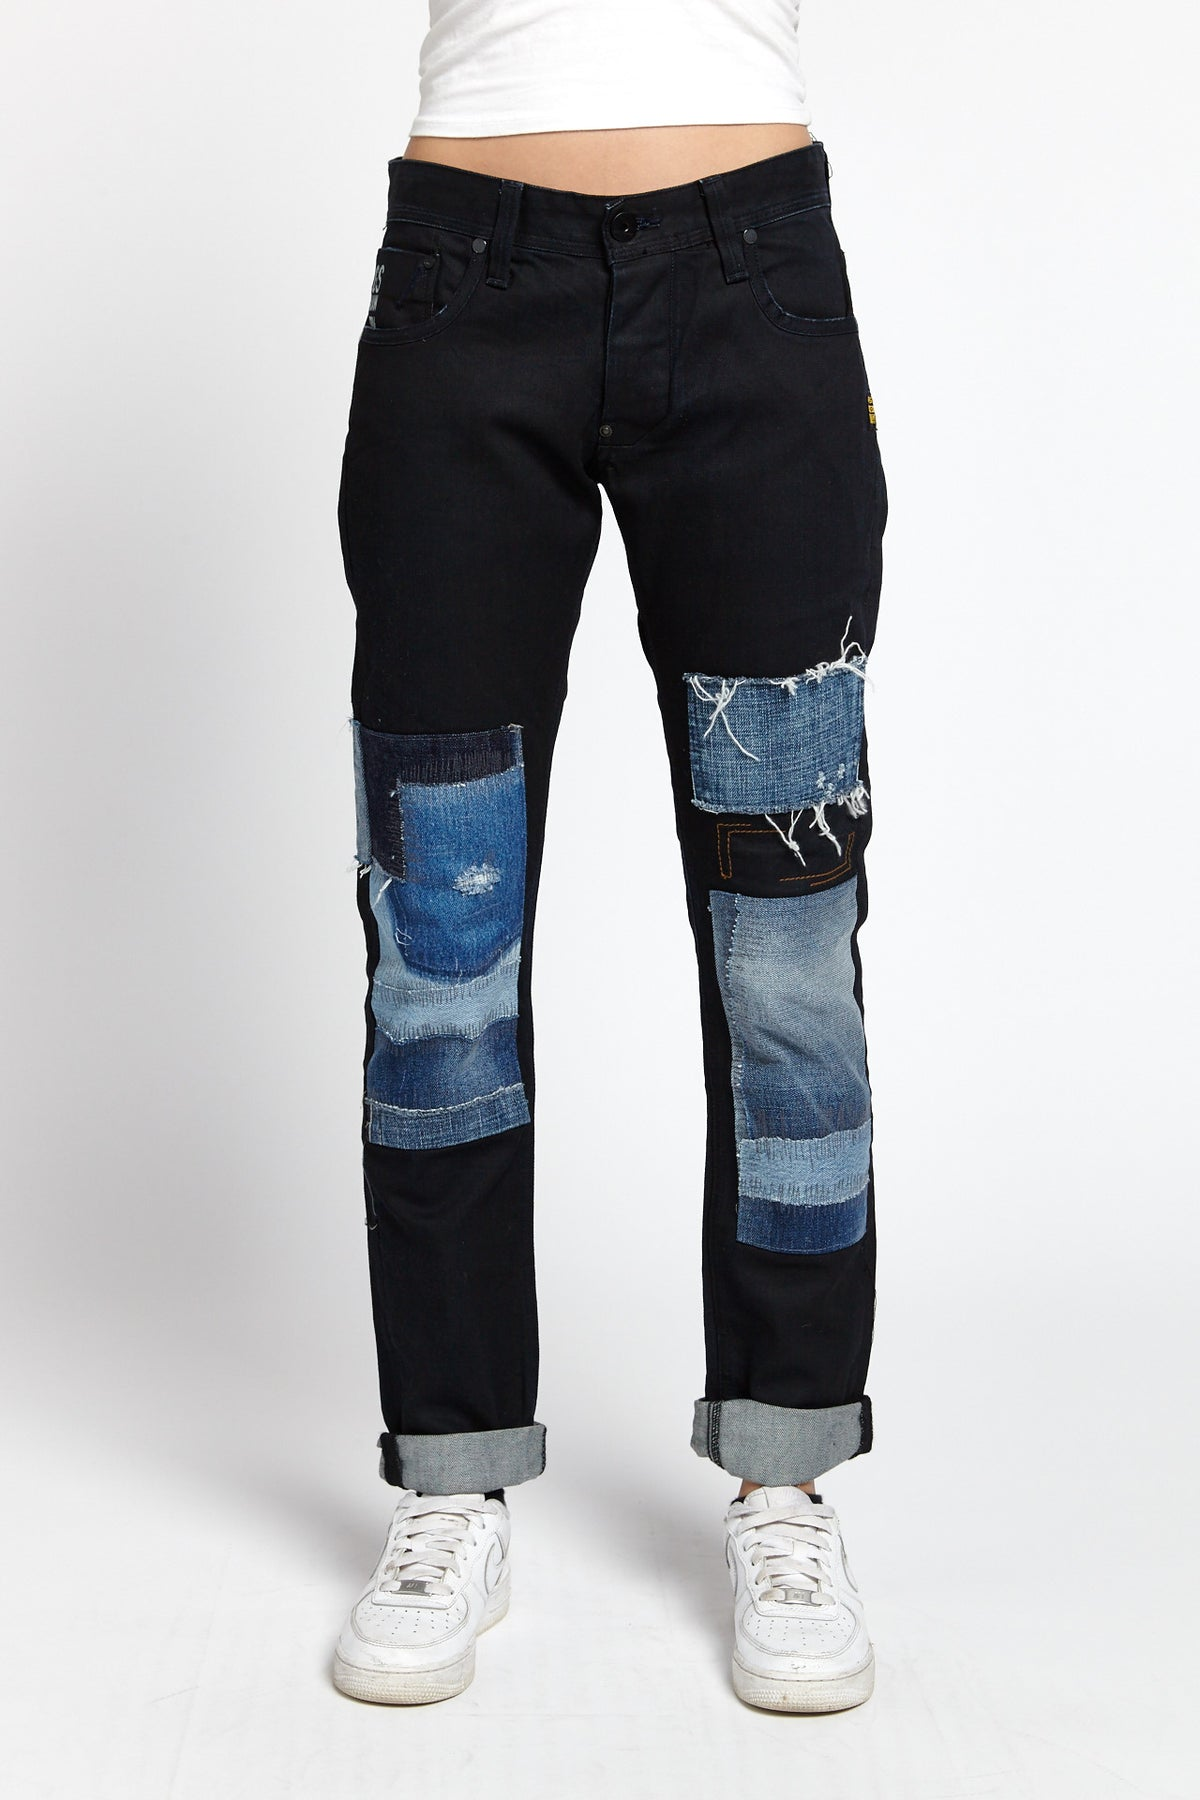 G-STAR RAW RECONSTRUCTED PATCHWORK COTTON BLACK 30 W JEANS-BOTTOMS-Mundane Official-30-BLACK-Mundane Official